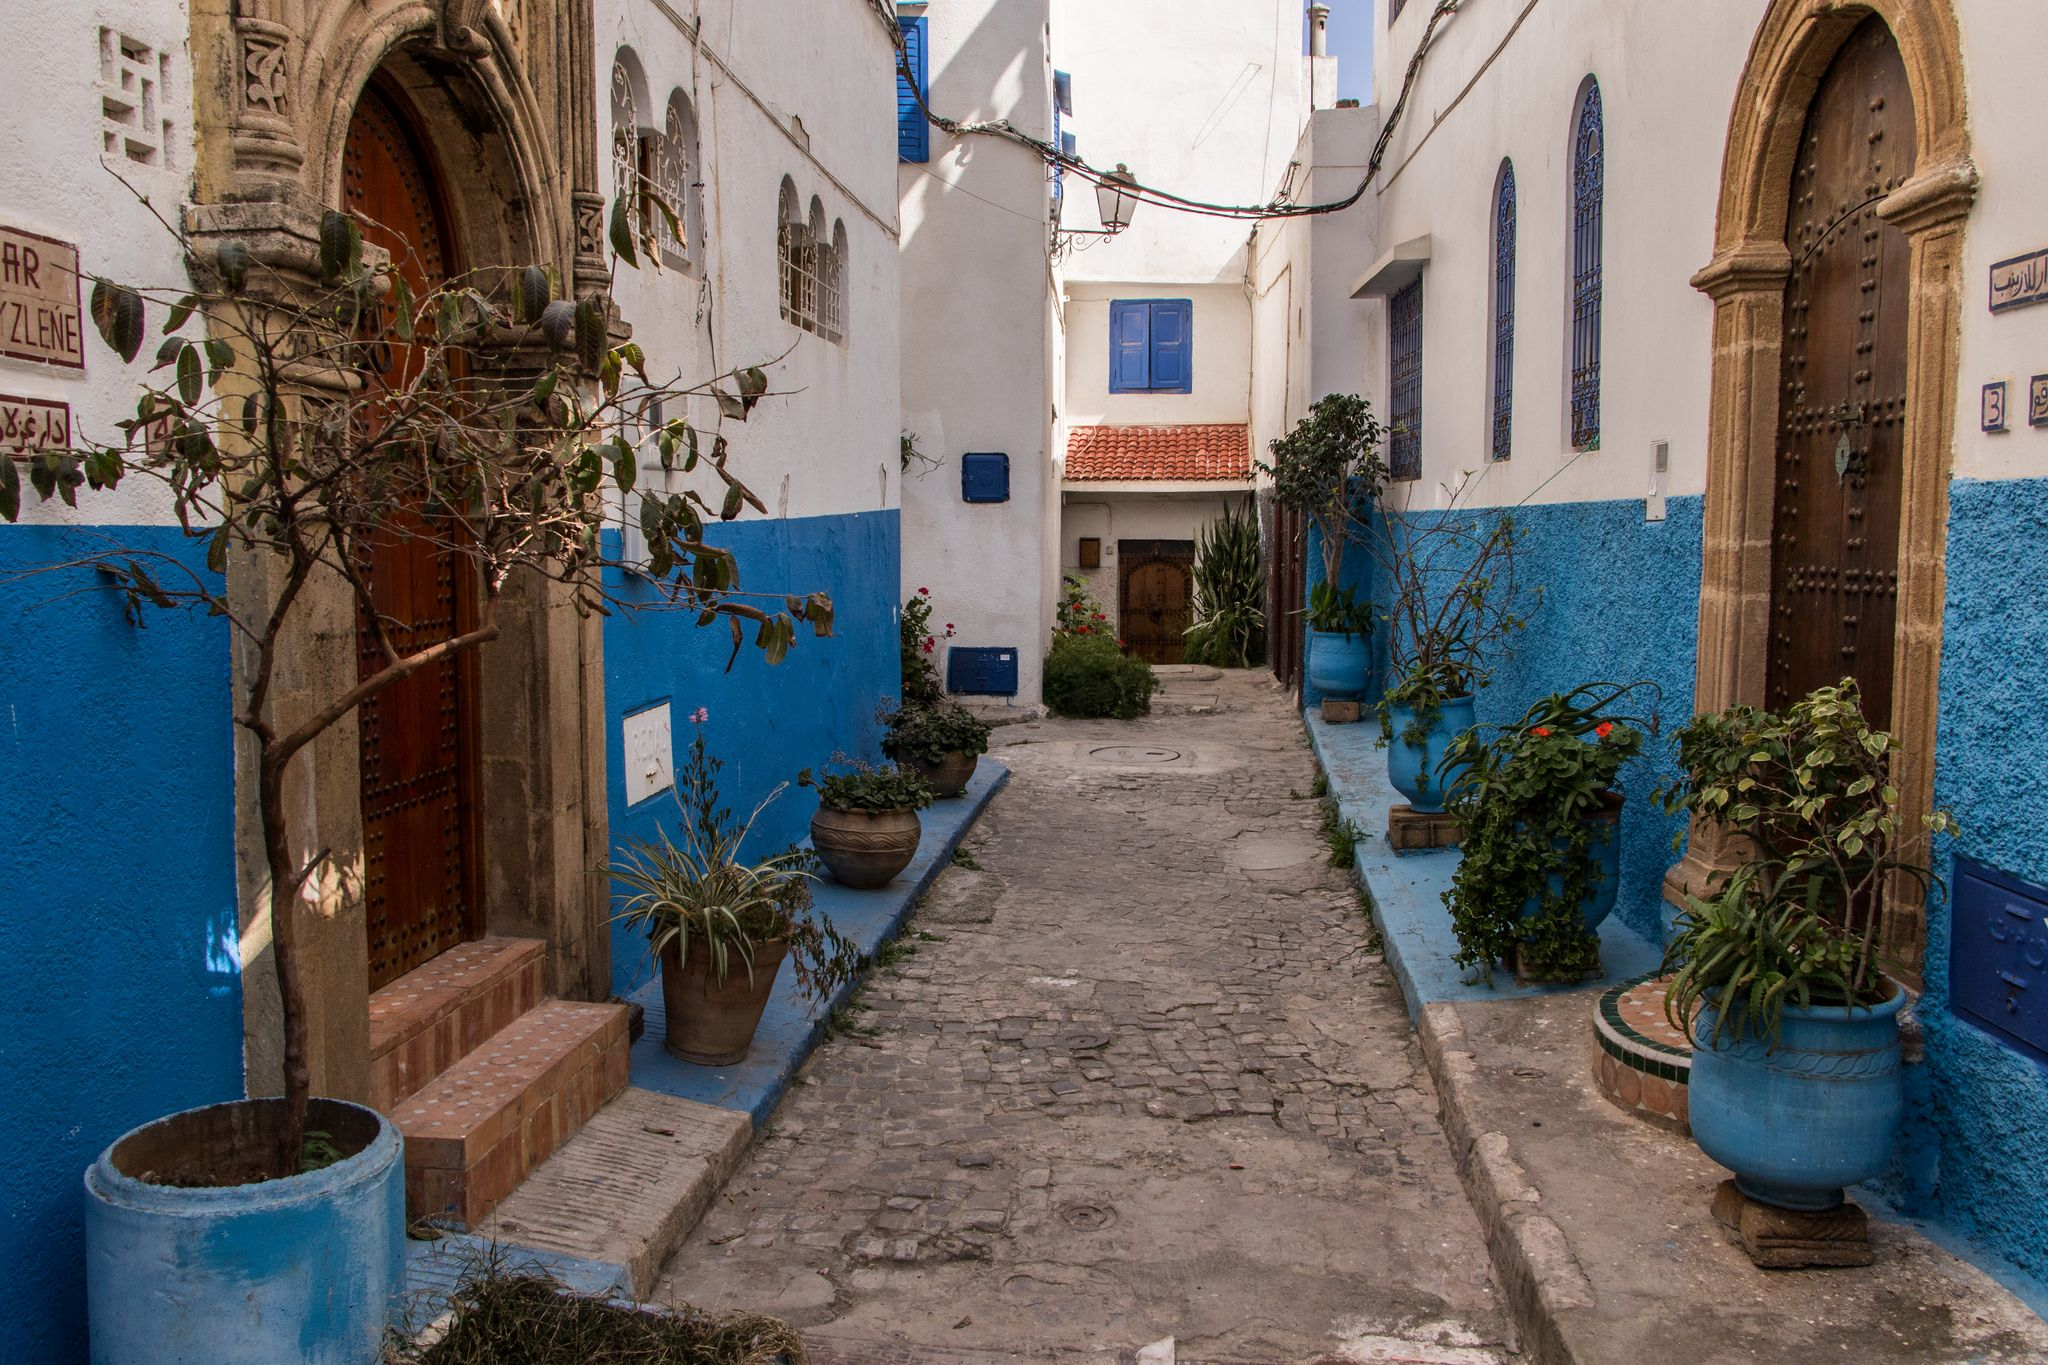 Southwest Airlines Reservations, A quick tour to Kasbah des Oudaias and its appealing places.